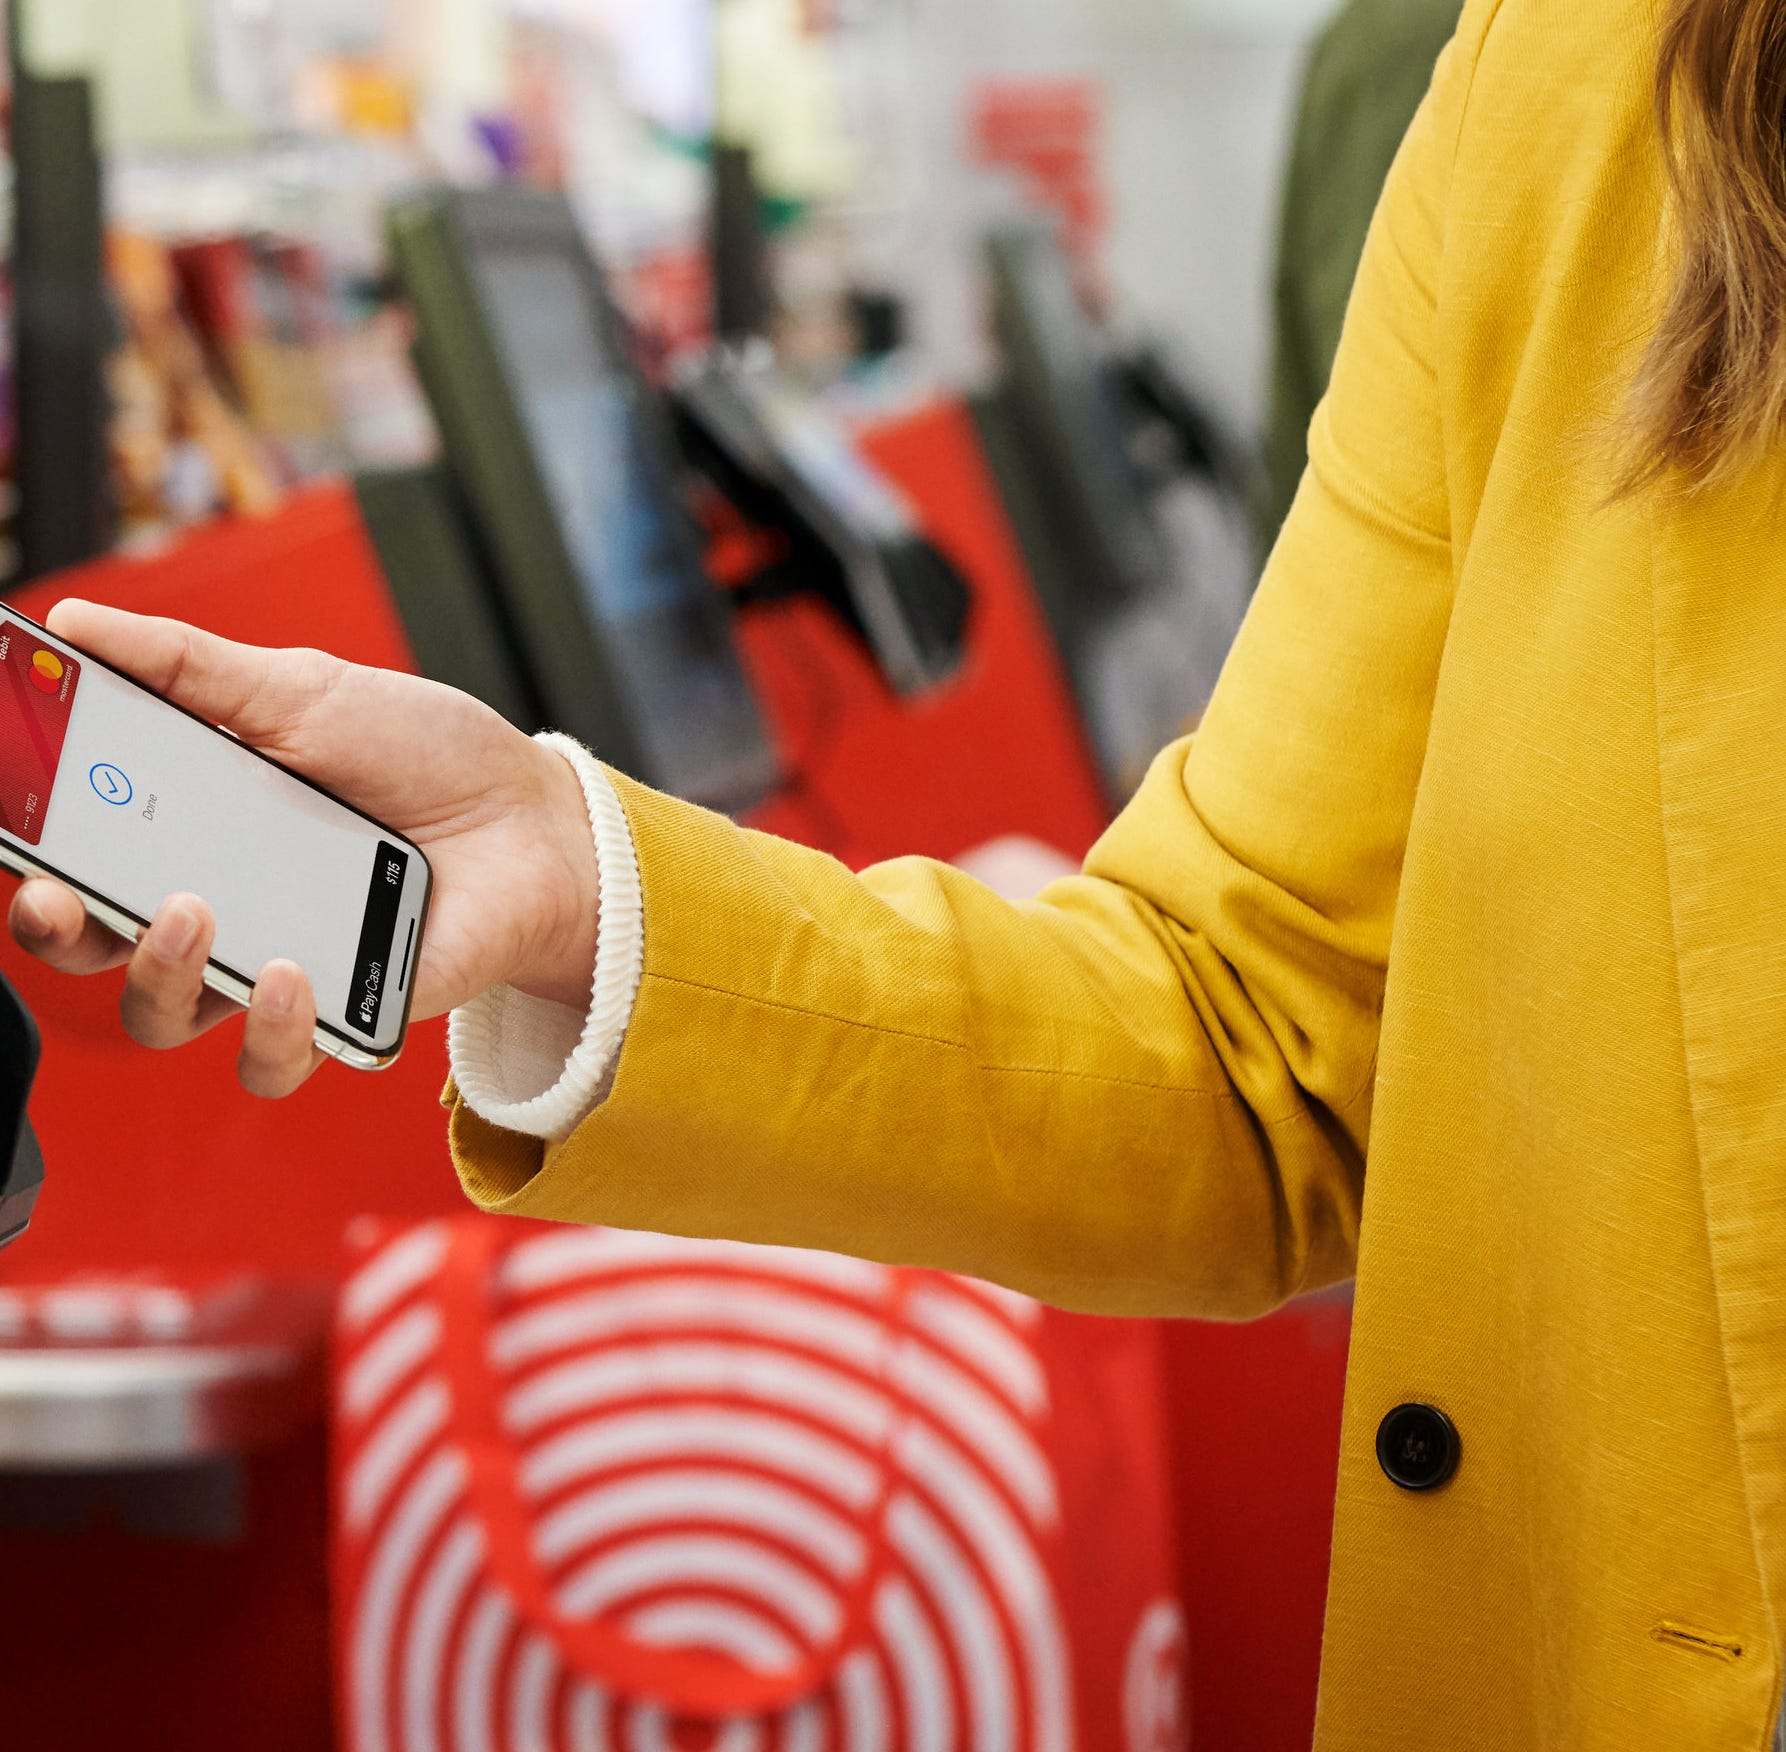 Apple Pay and other mobile payment solutions are...